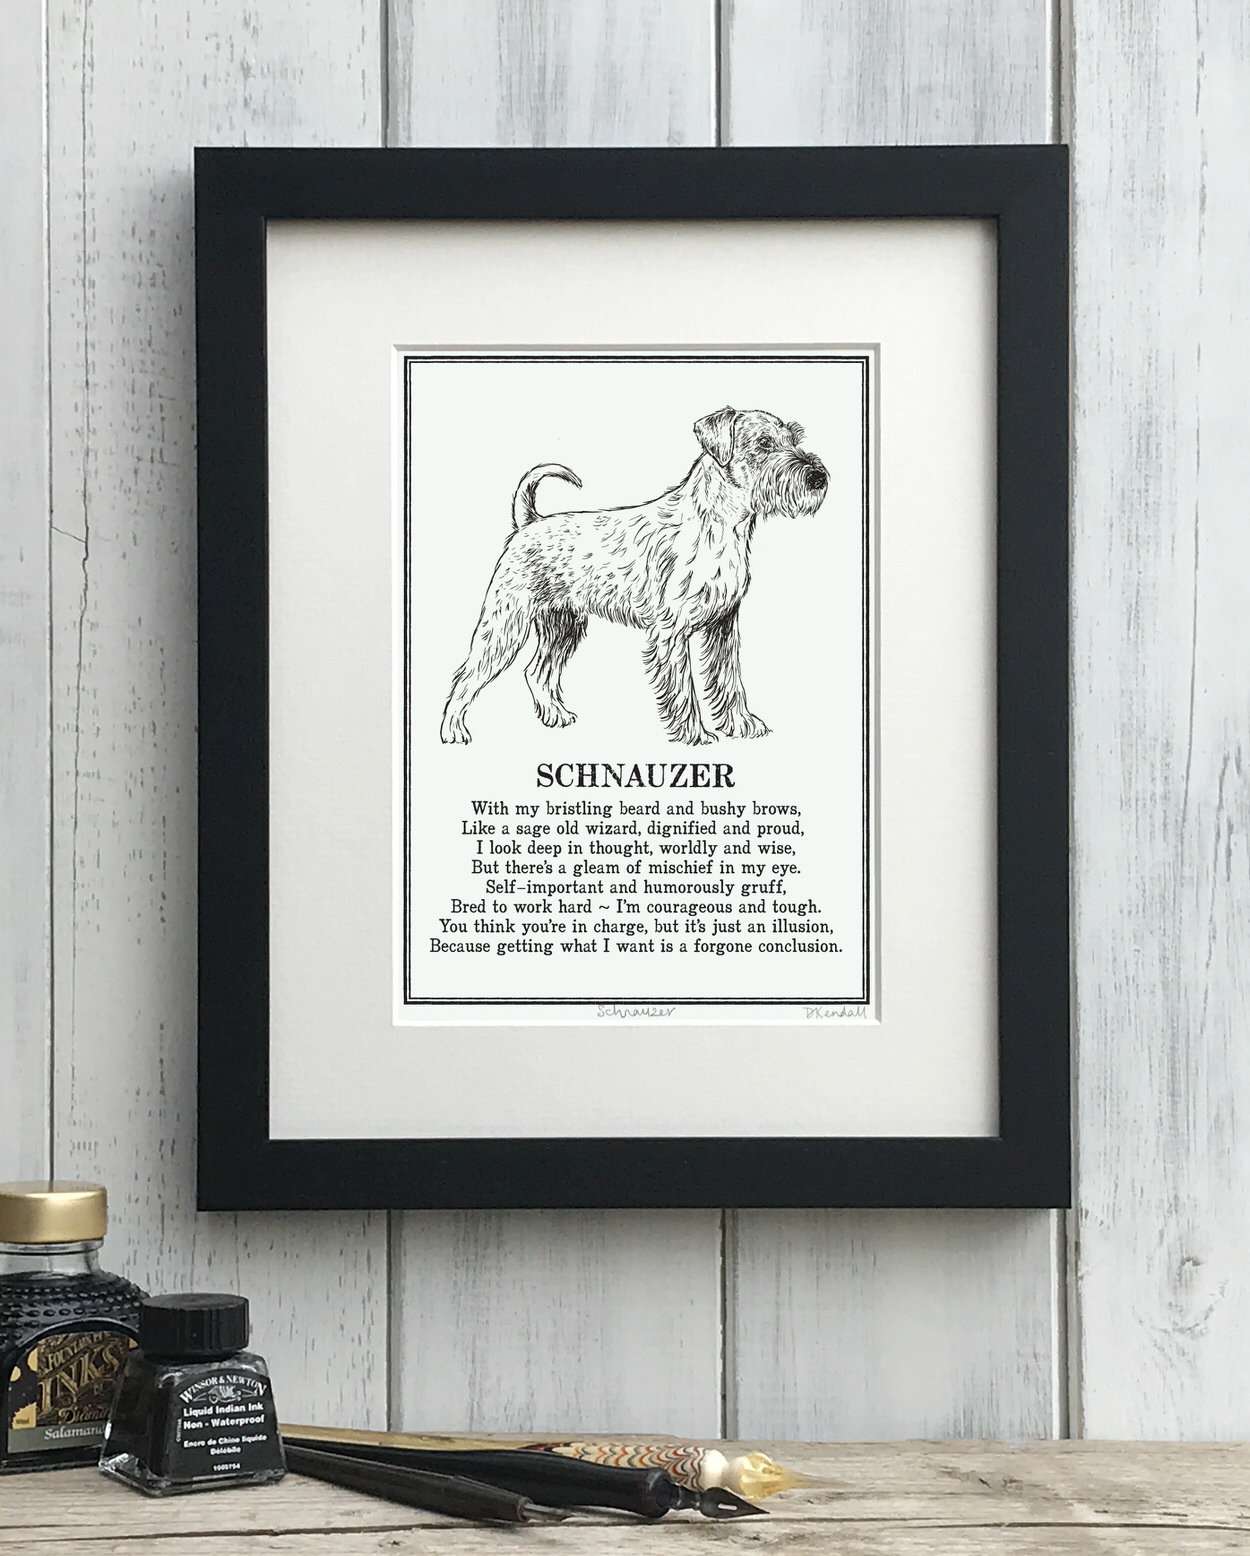 Schnauzer print illustrated poem by The Enlightened Hound